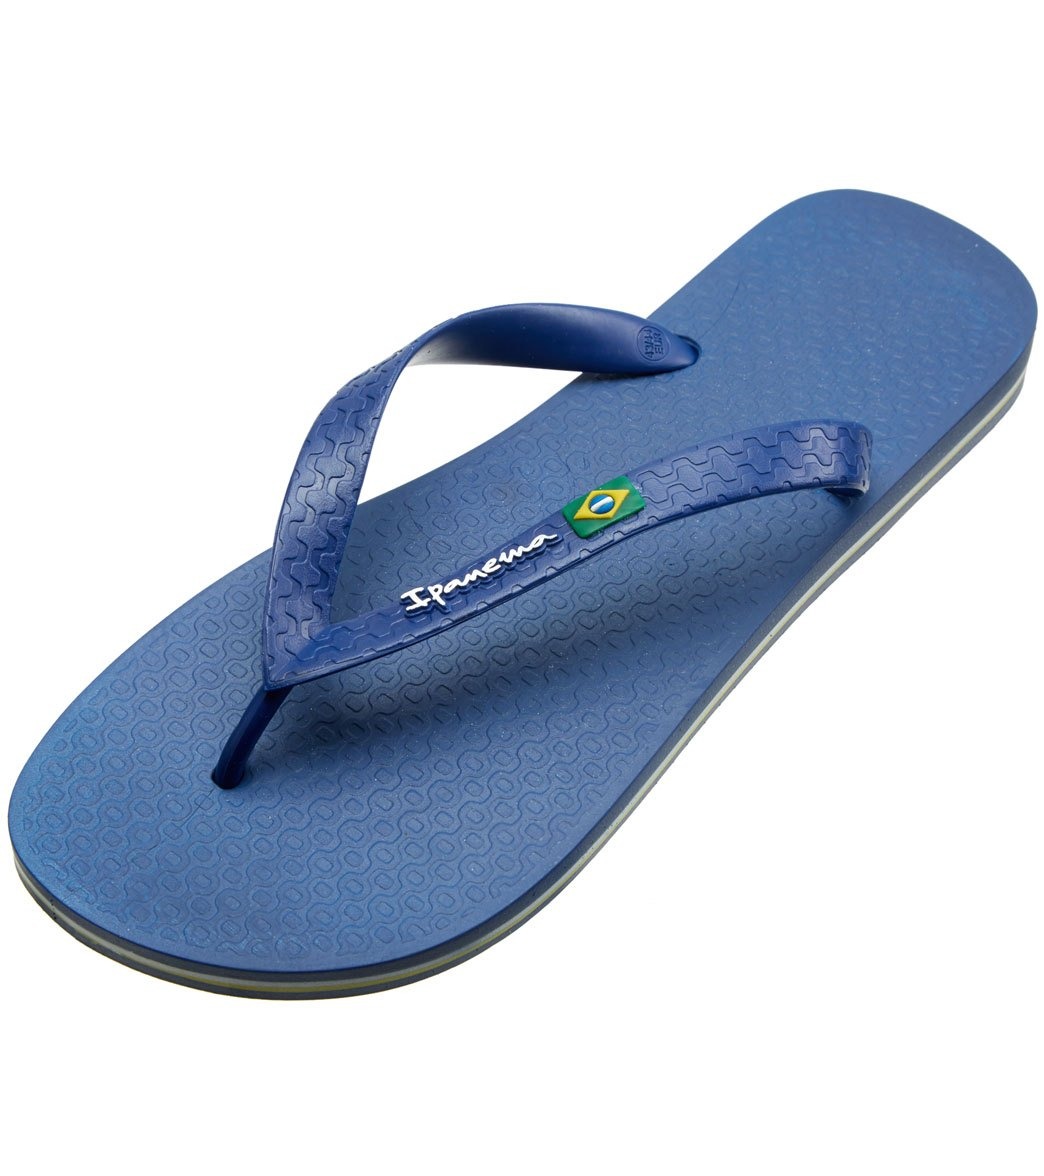 42300851e5ba Ipanema Men s Classic Brazil II Flip Flop at SwimOutlet.com